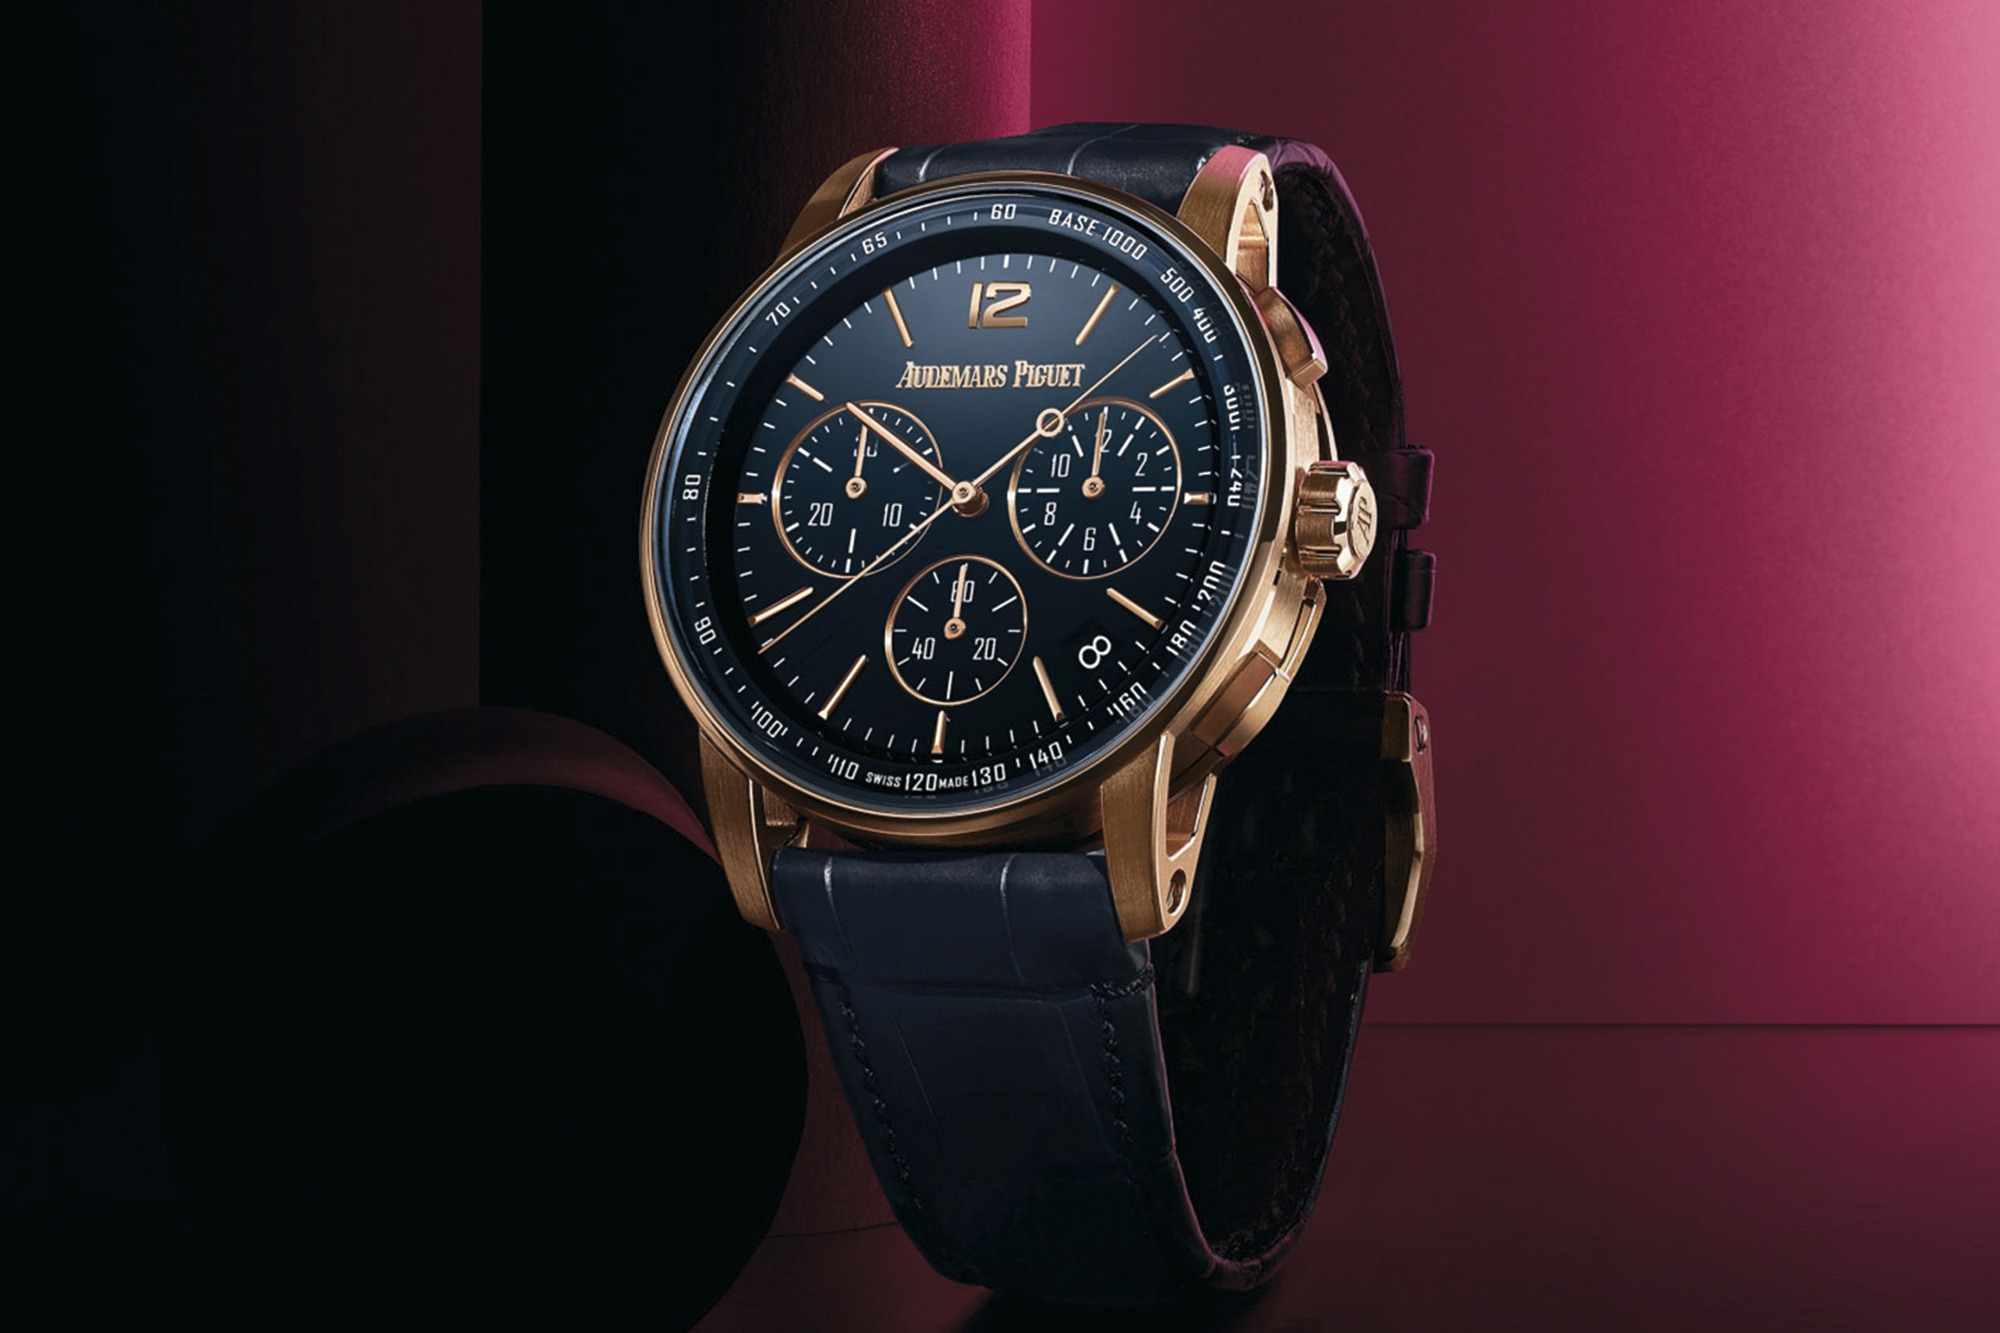 Audemars Piguet Code 11 59 Self Winding Chronograph